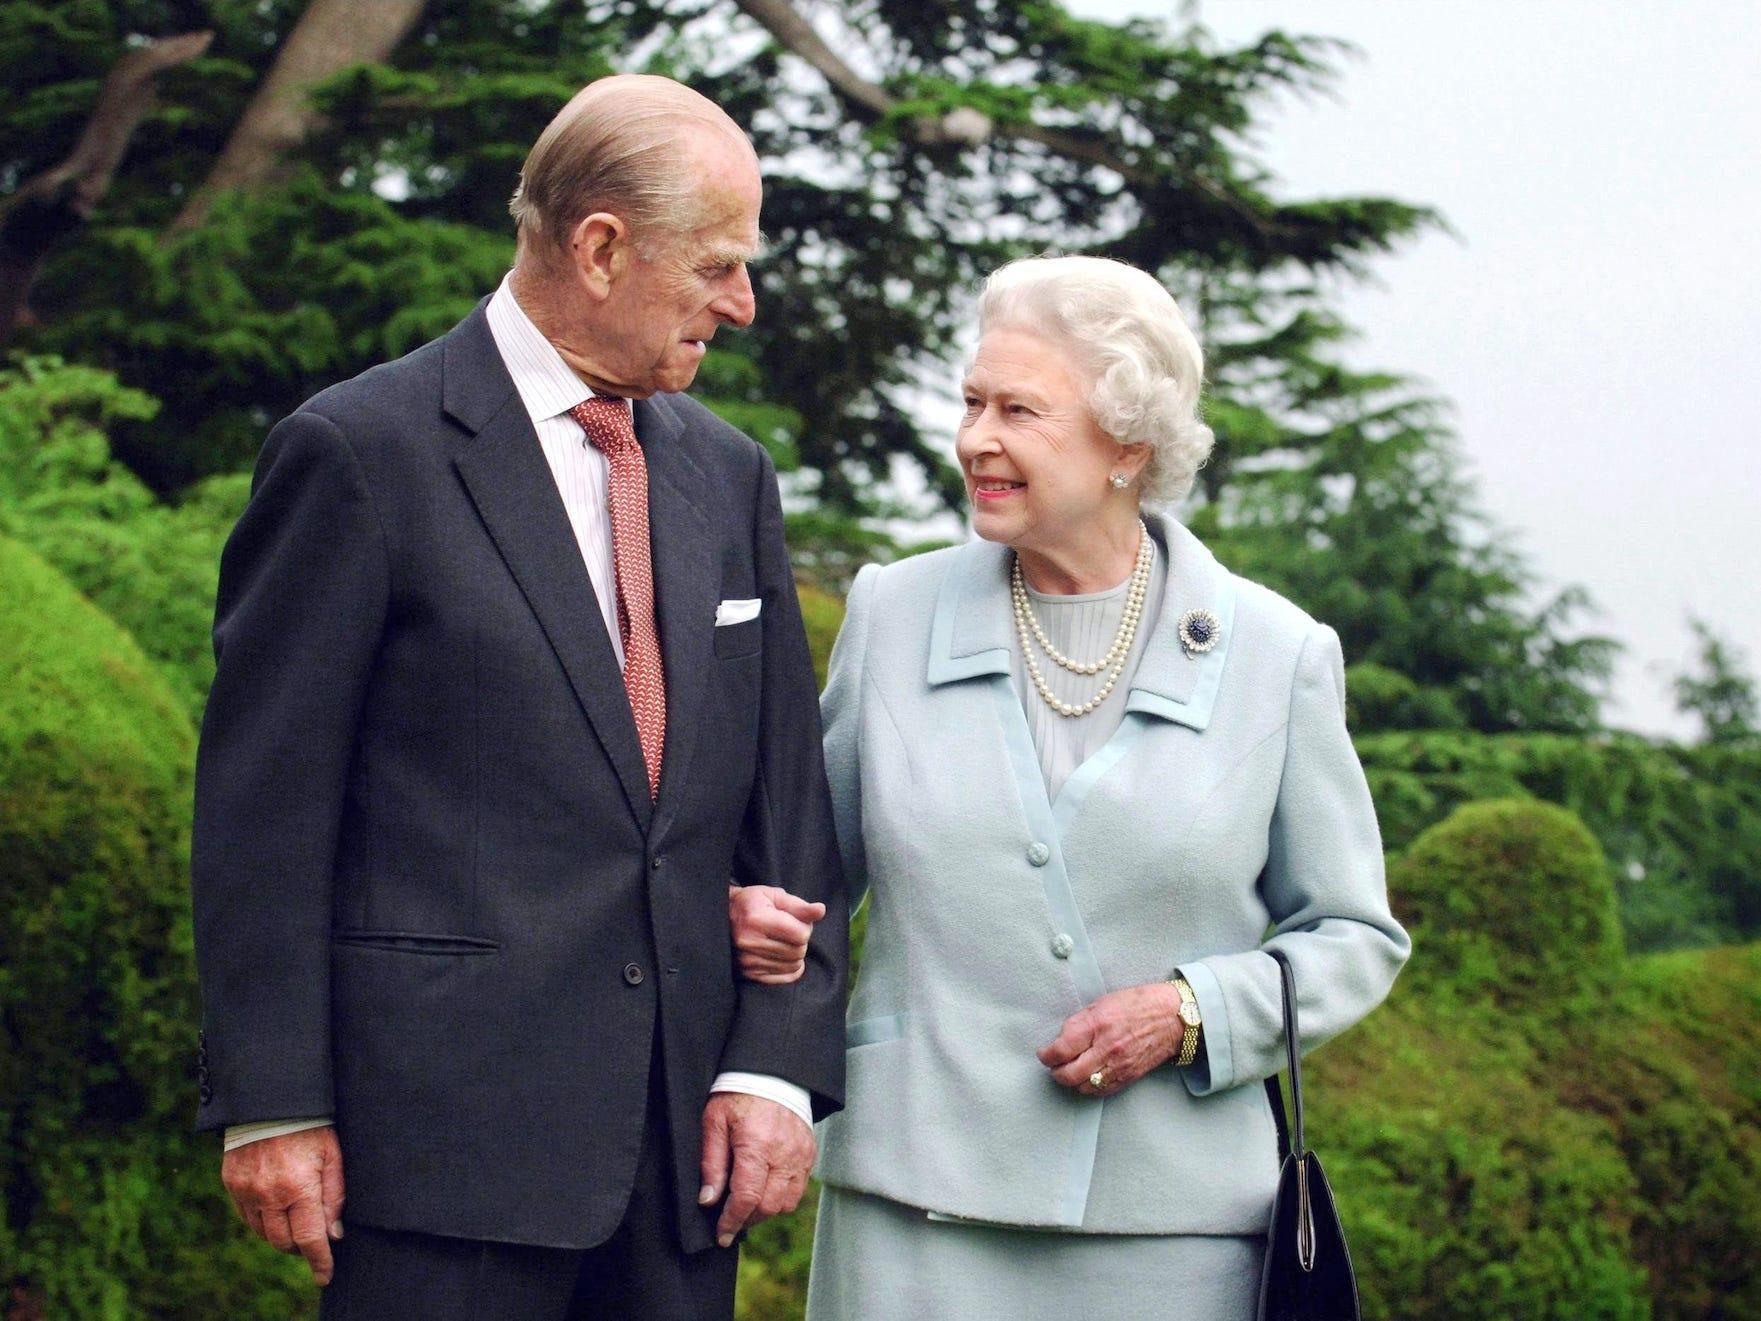 How the Prince Philip's mourning period and funeral going to take place?